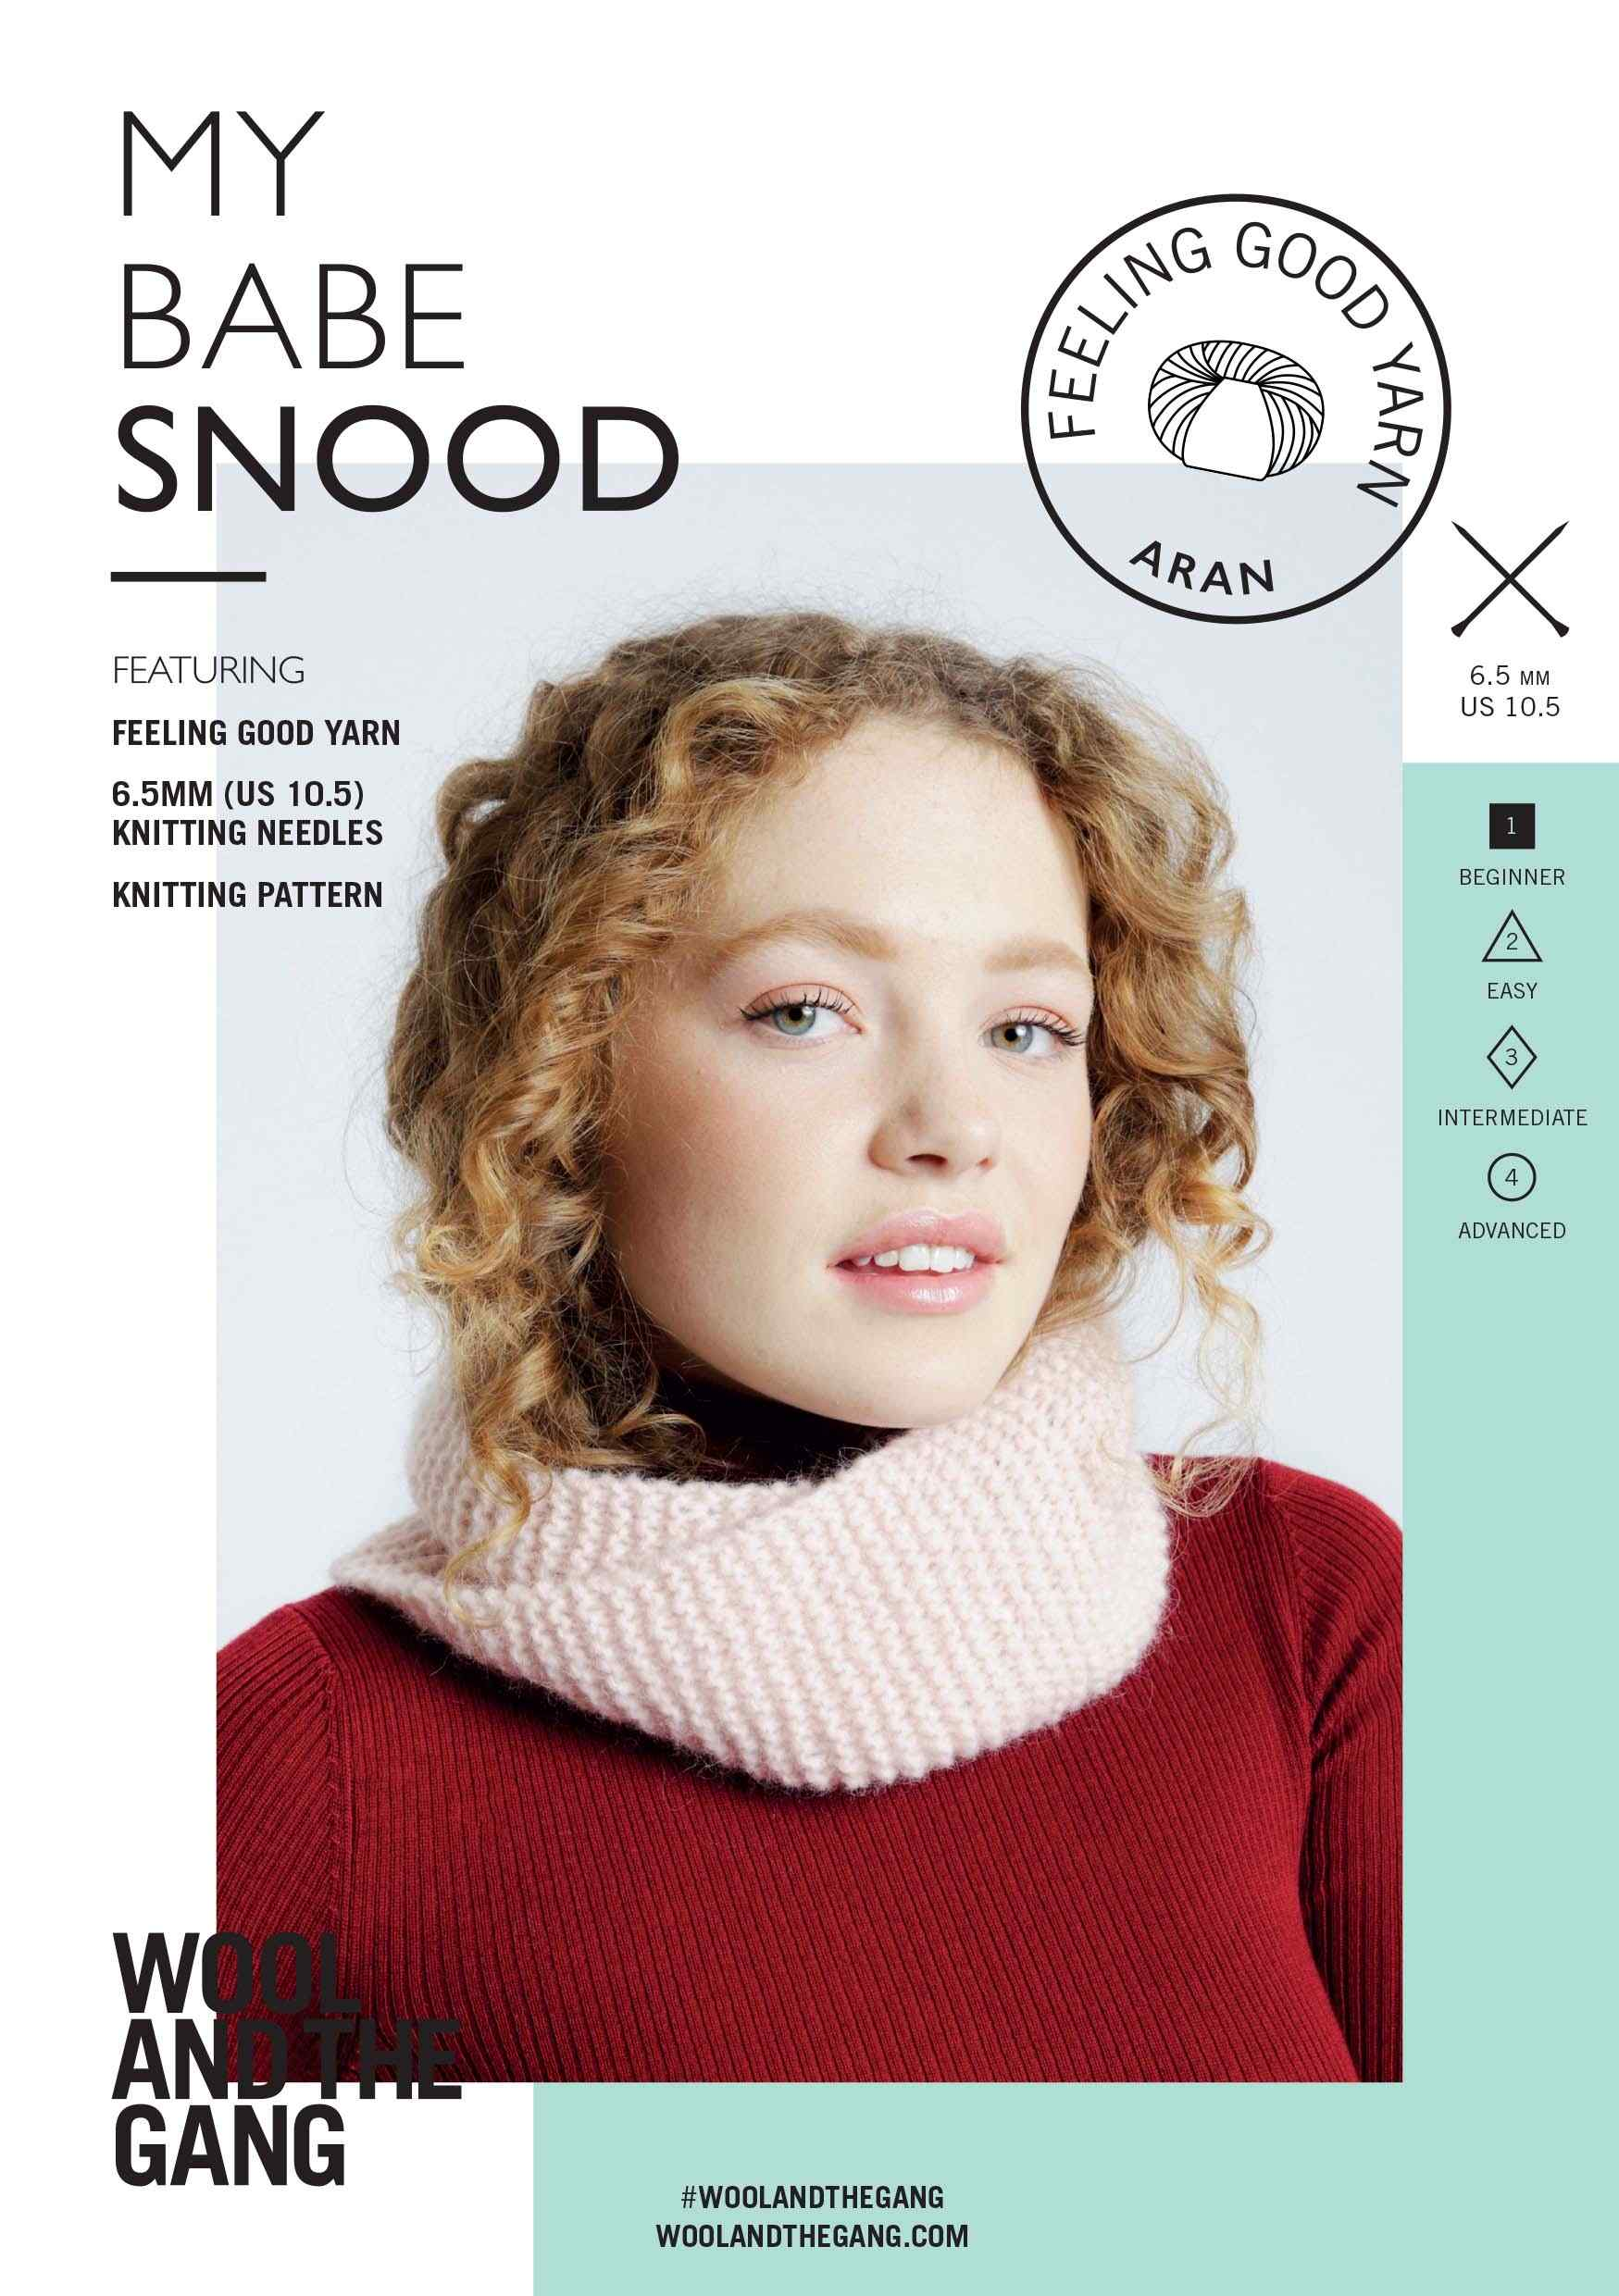 WATG My Babe Snood Knitting Pattern